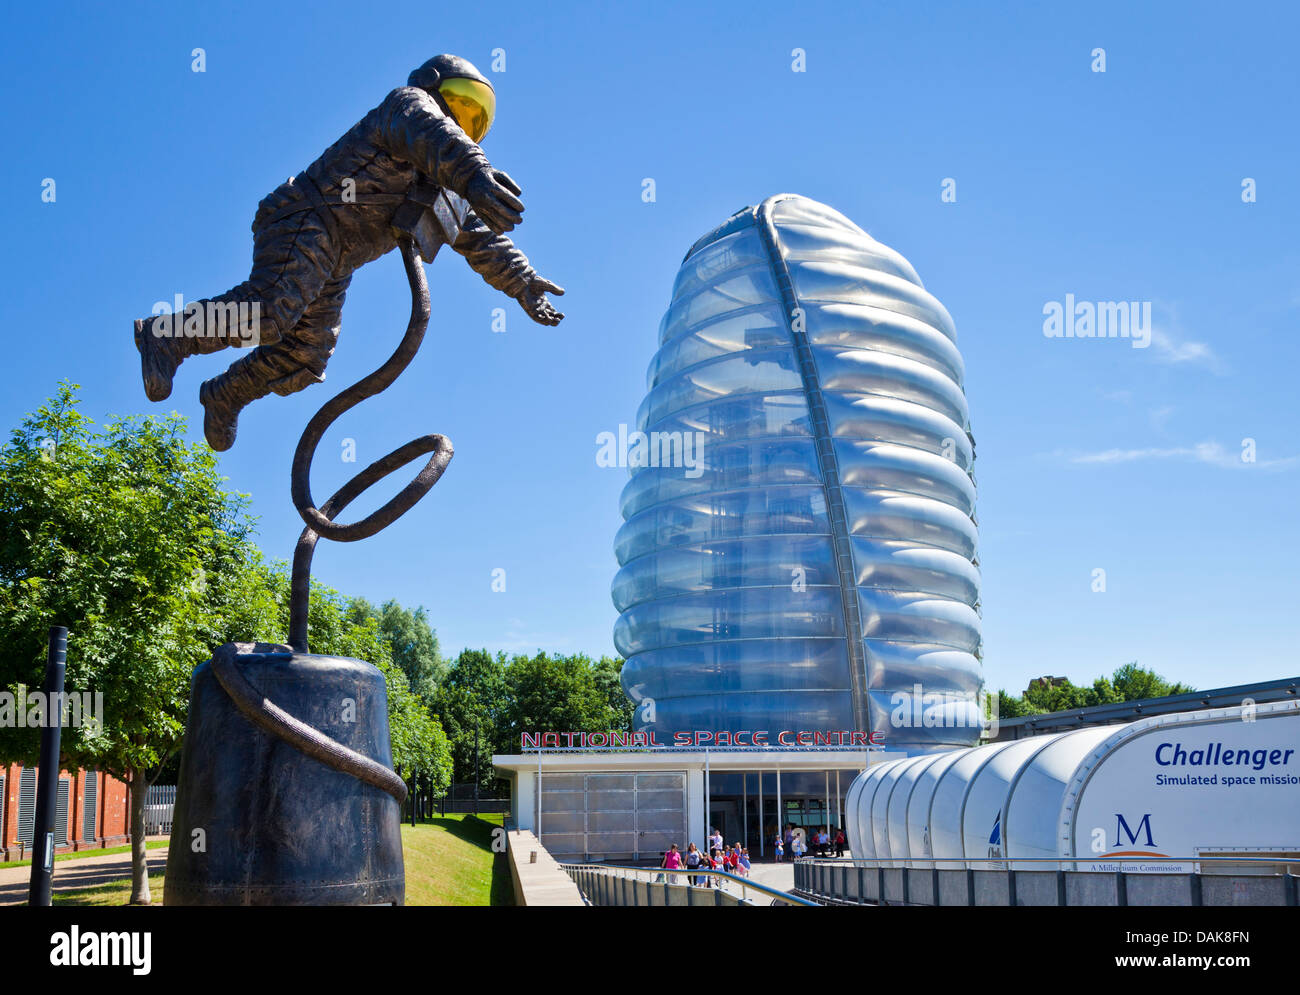 Astronaut model outside the The National Space centre Rocket tower Leicester national space centre leicester space - Stock Image